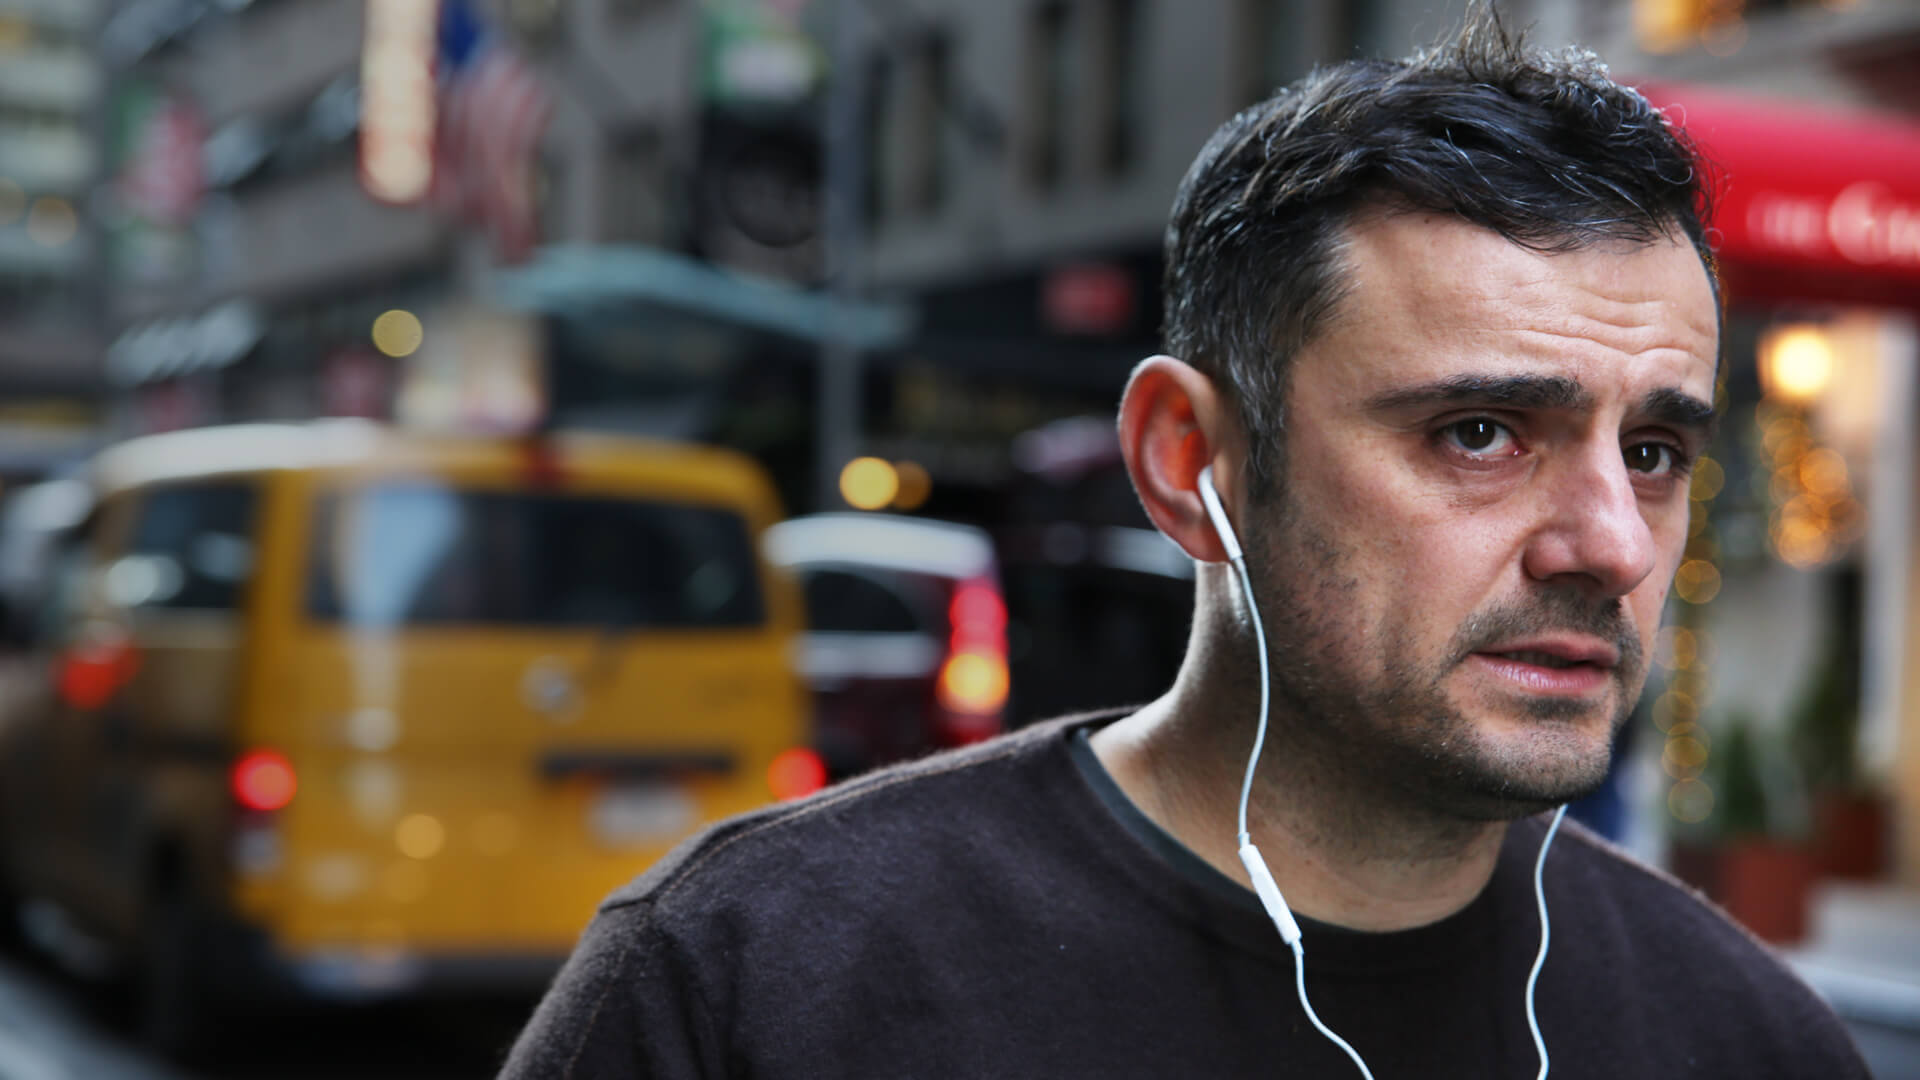 #askgaryvee – Featured Image